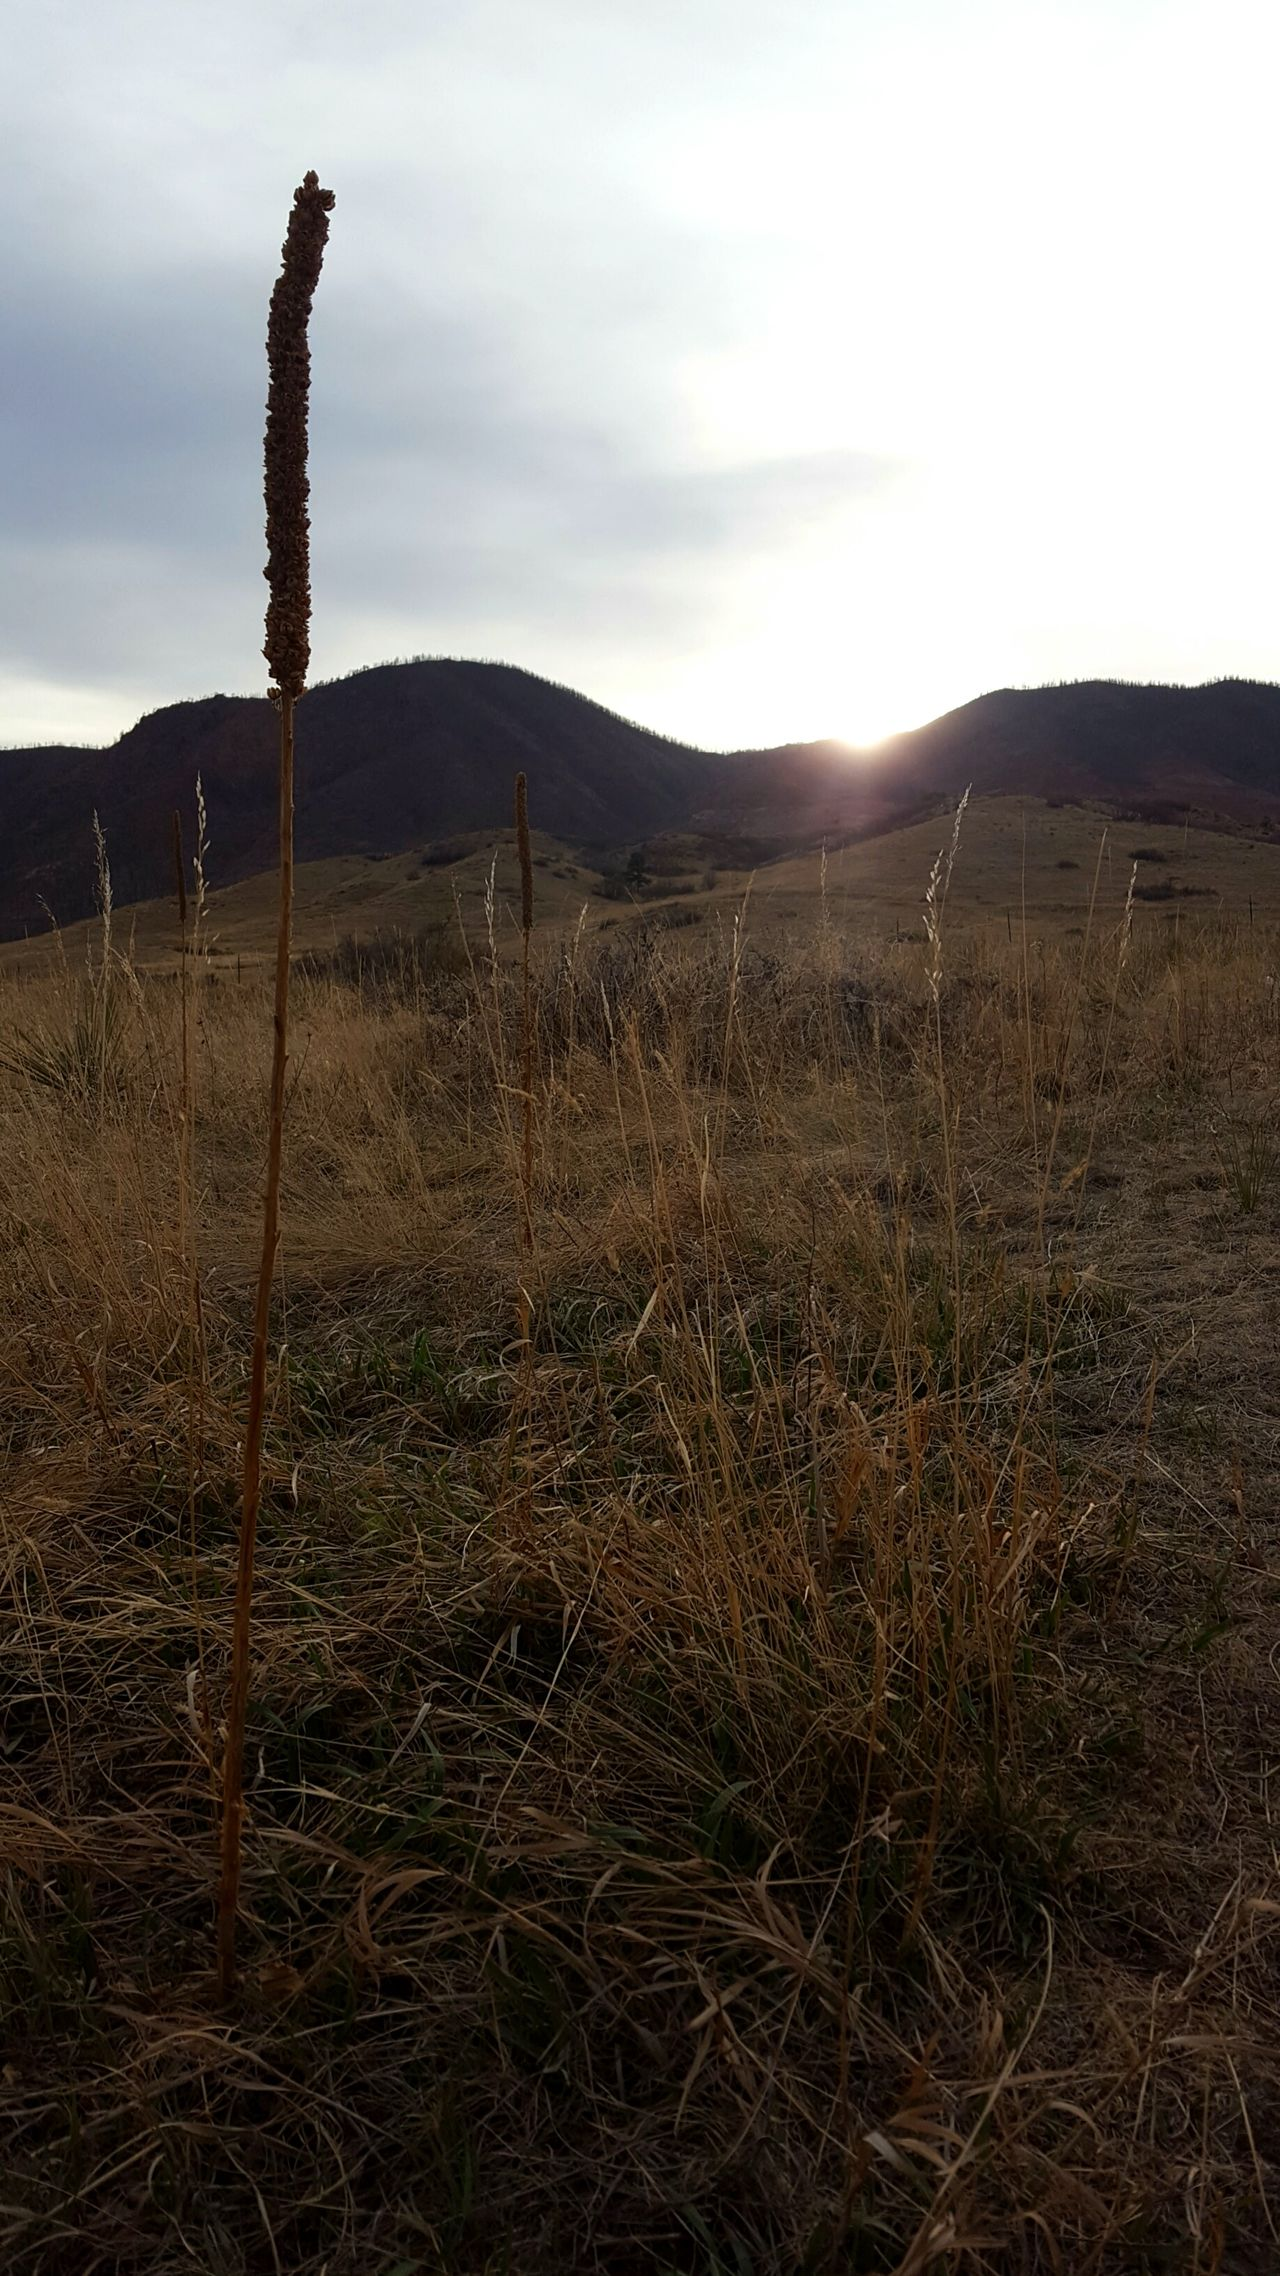 Nature Landscape Spring Outdoors Beauty In Nature Cloud - Sky Sky Day No People Light Near Focus Plant Sunset Sunlight Sunbeams TheGreatOutdoors Trail Optoutside Mountain The Rocky Mountains Foothills Foothills Of The Rockies Colorado Simplicity Greettheoutdoors